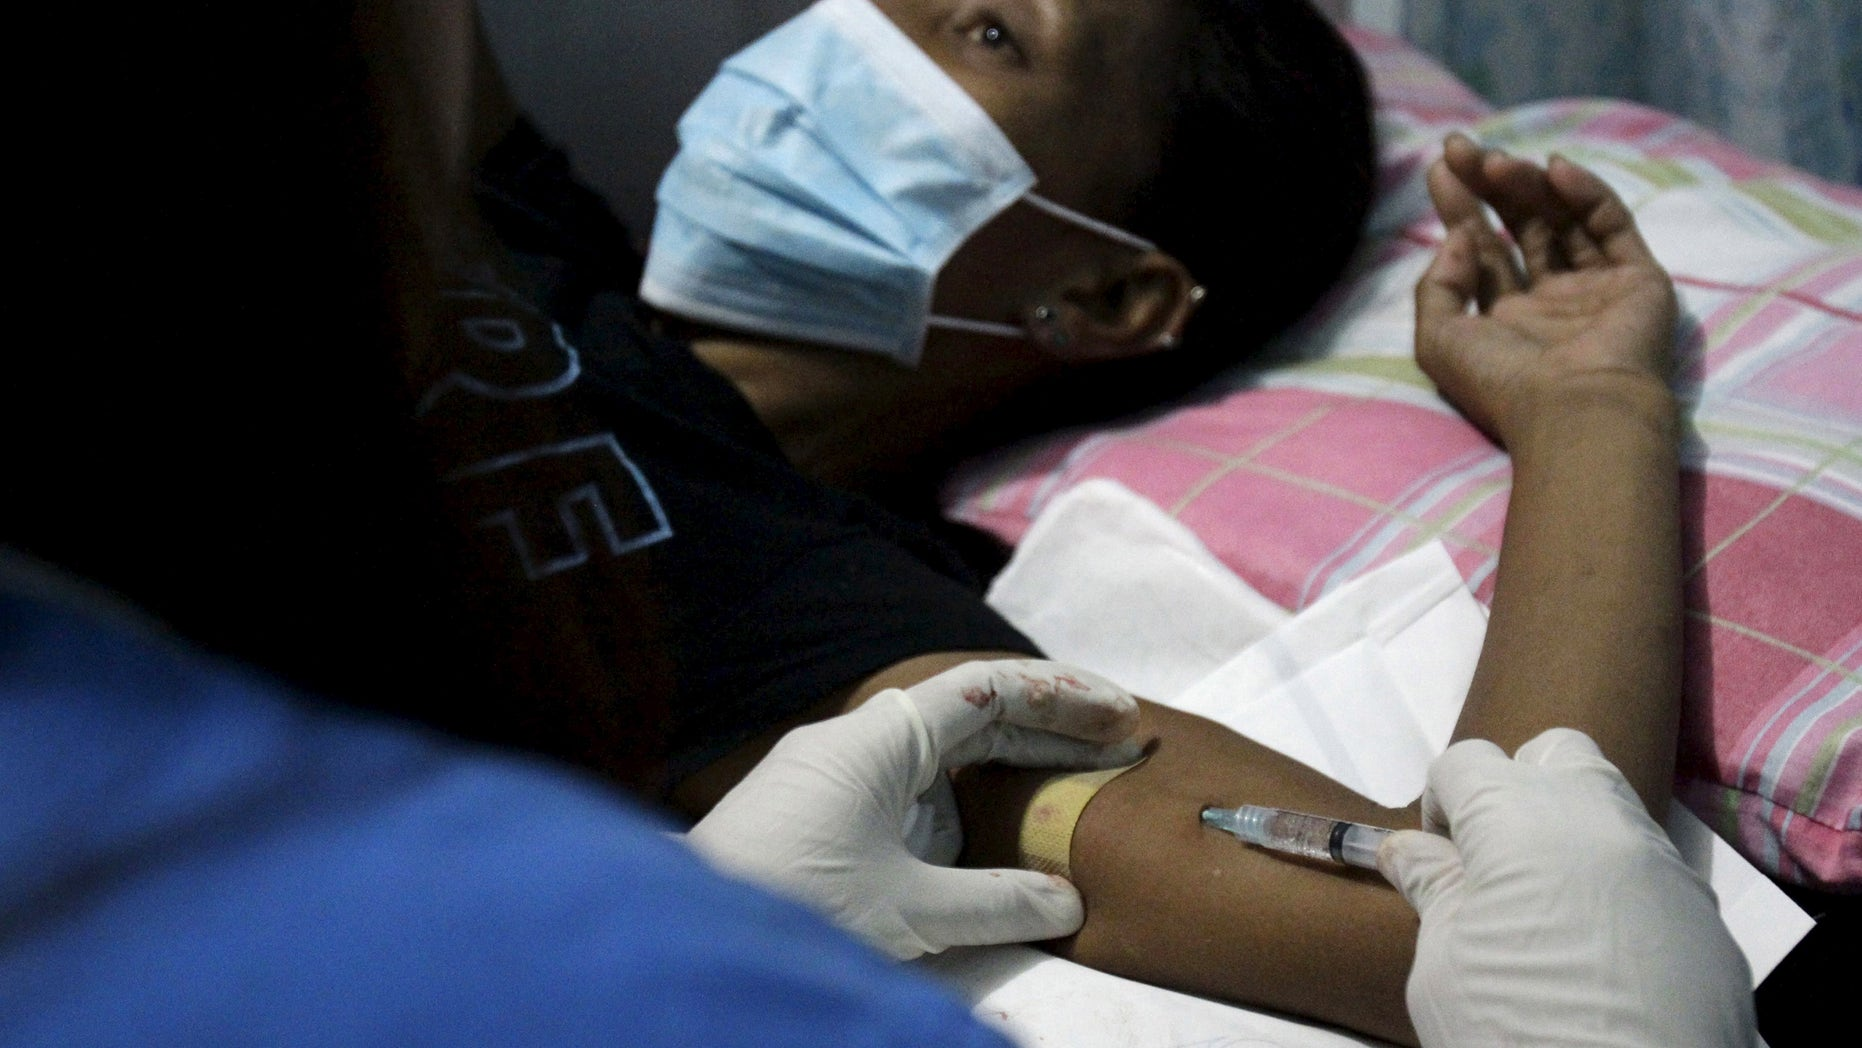 A health worker inserts an injectable contraceptive into a woman's arm during a reproductive health clinic run by an Non-Governmental Organization (NGO) in Tondo city, metro Manila January 12, 2016.